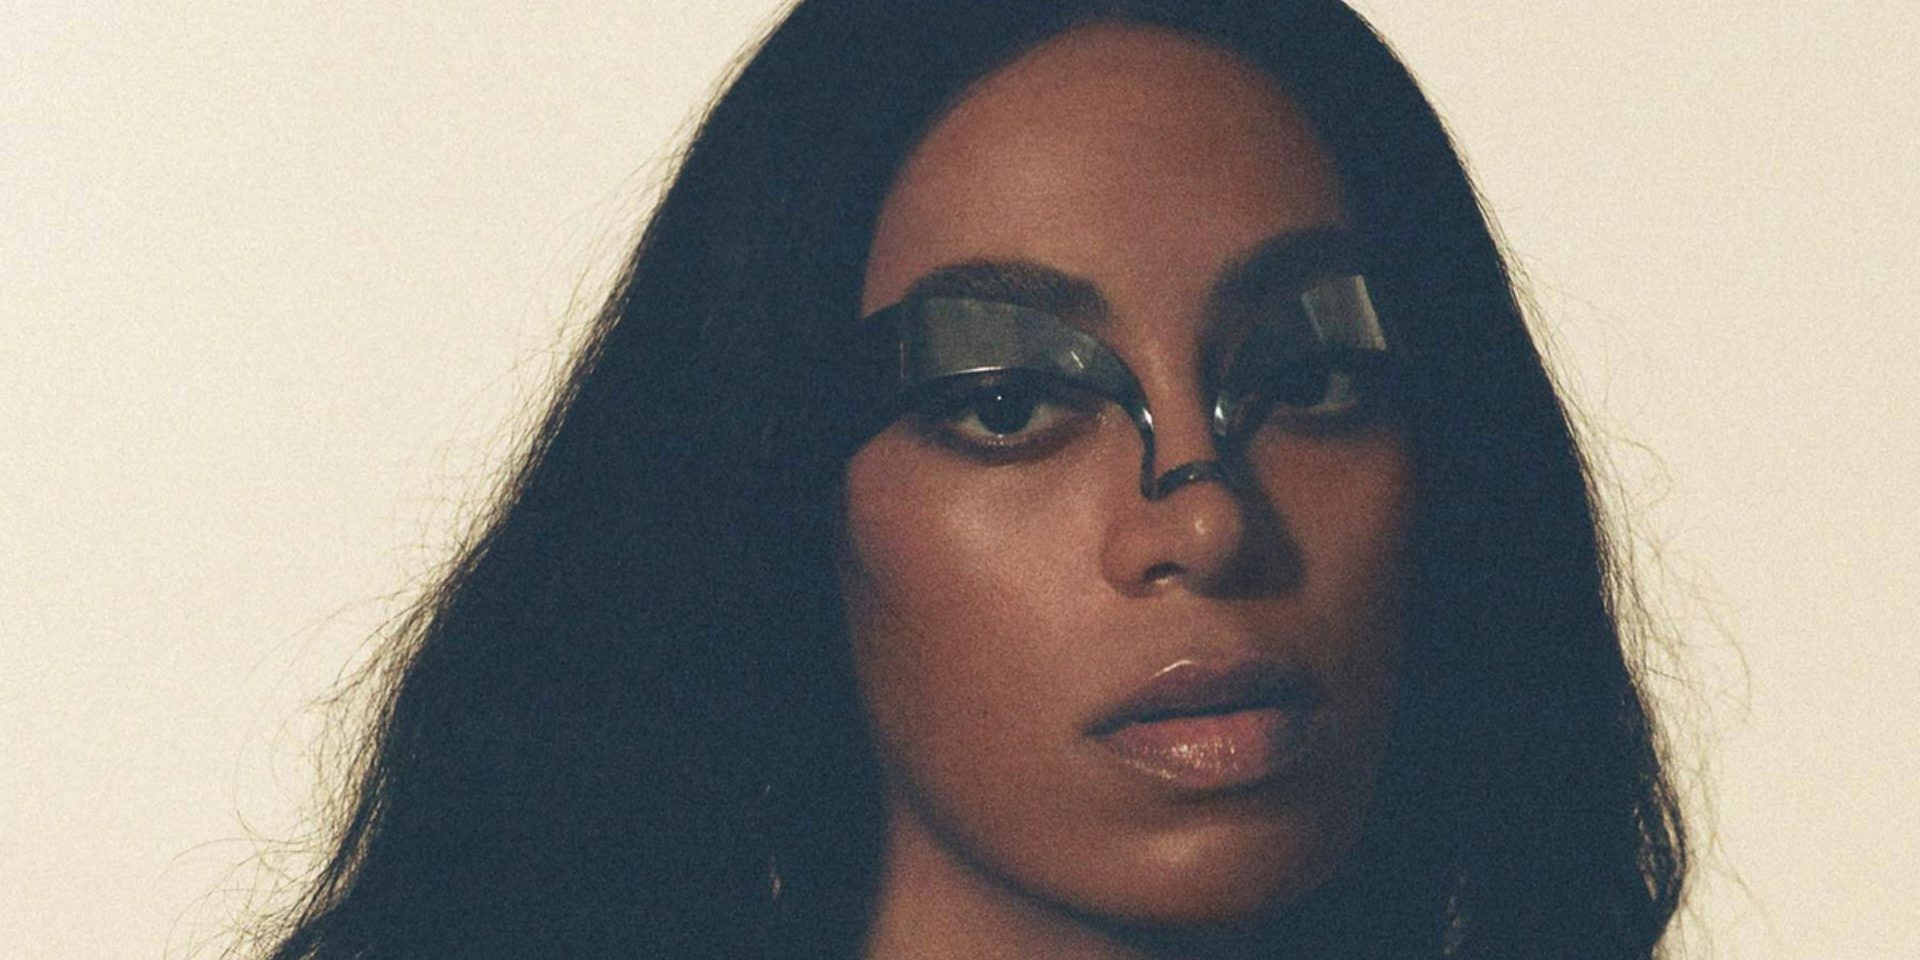 Solange has pulled out of Coachella